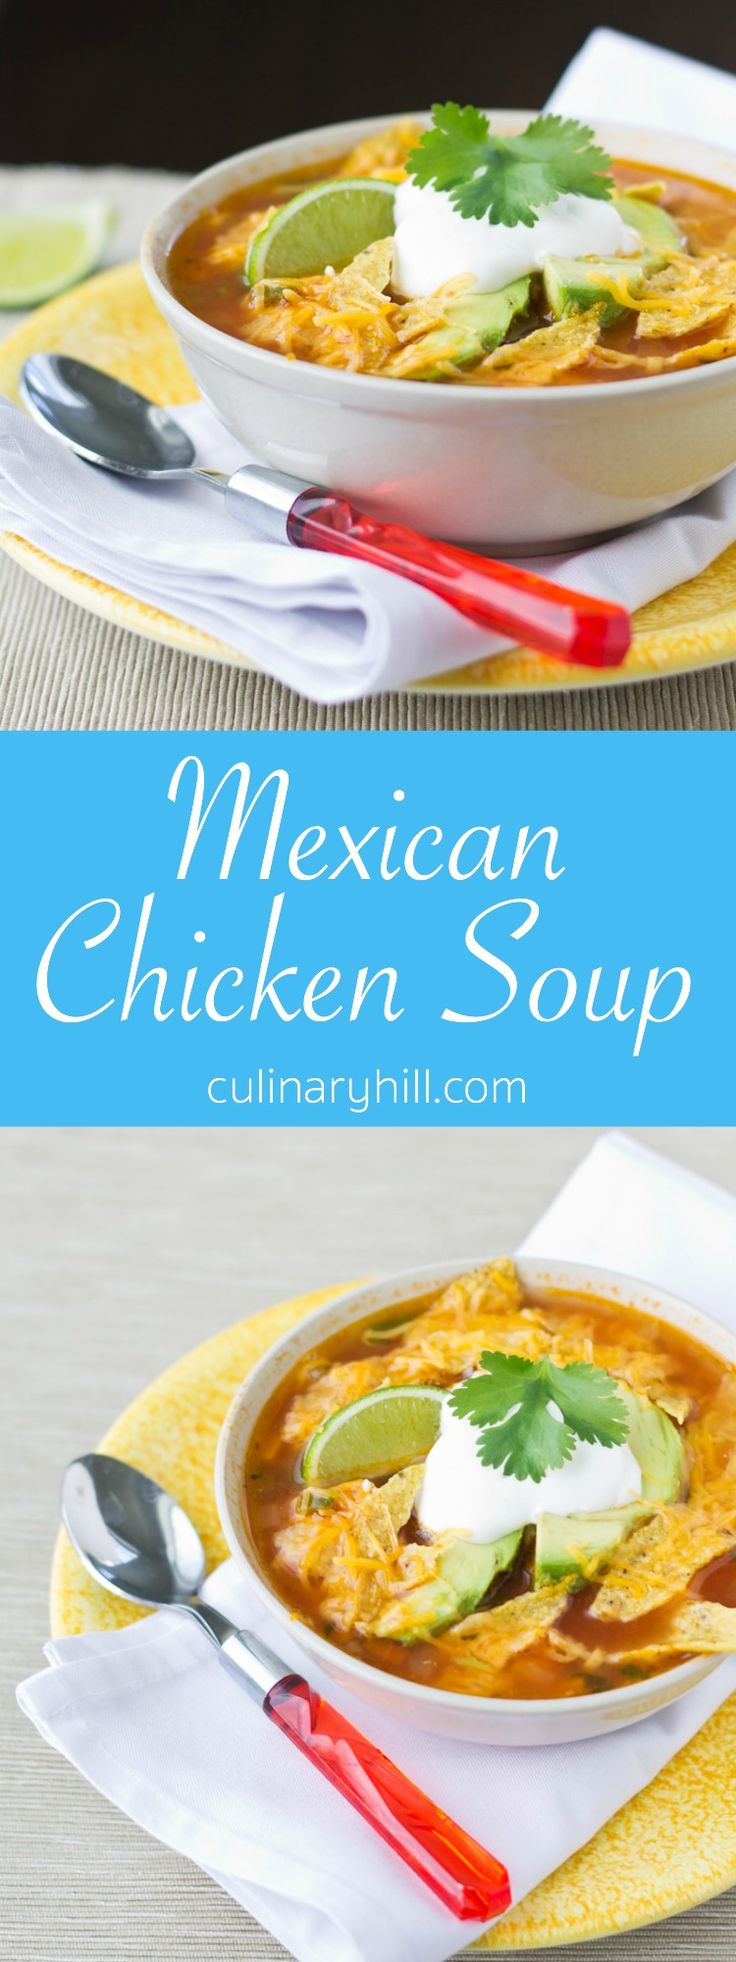 This easiest, tastiest Mexican Chicken Soup is made in your own kitchen! It's healthy, hearty, and ready in only 30 minutes.